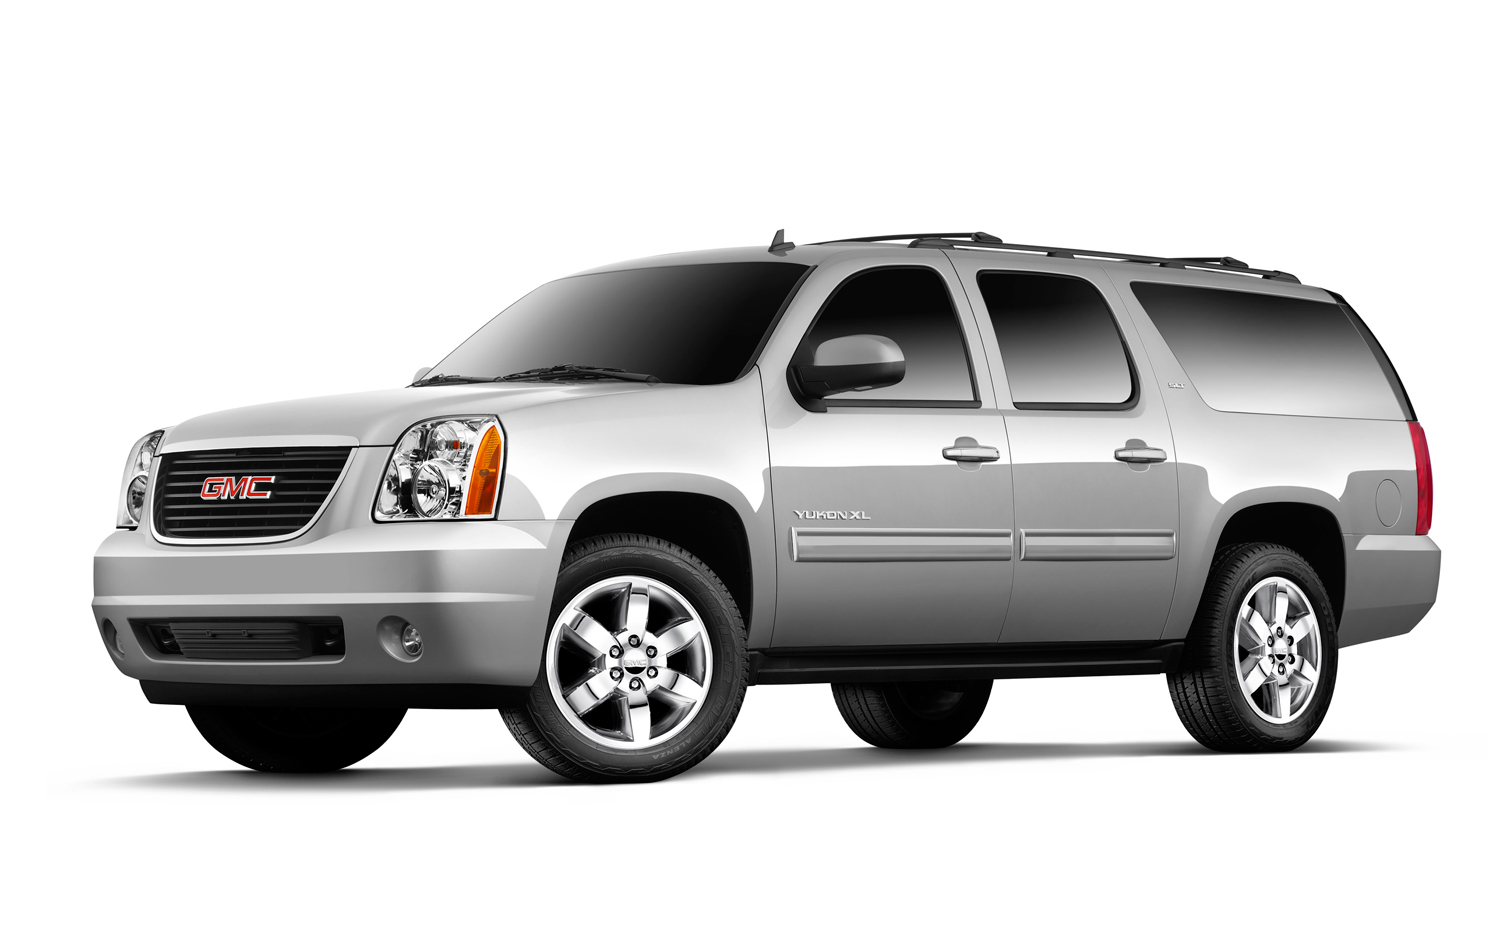 Pre-Owned SUV's For Sale in Largo